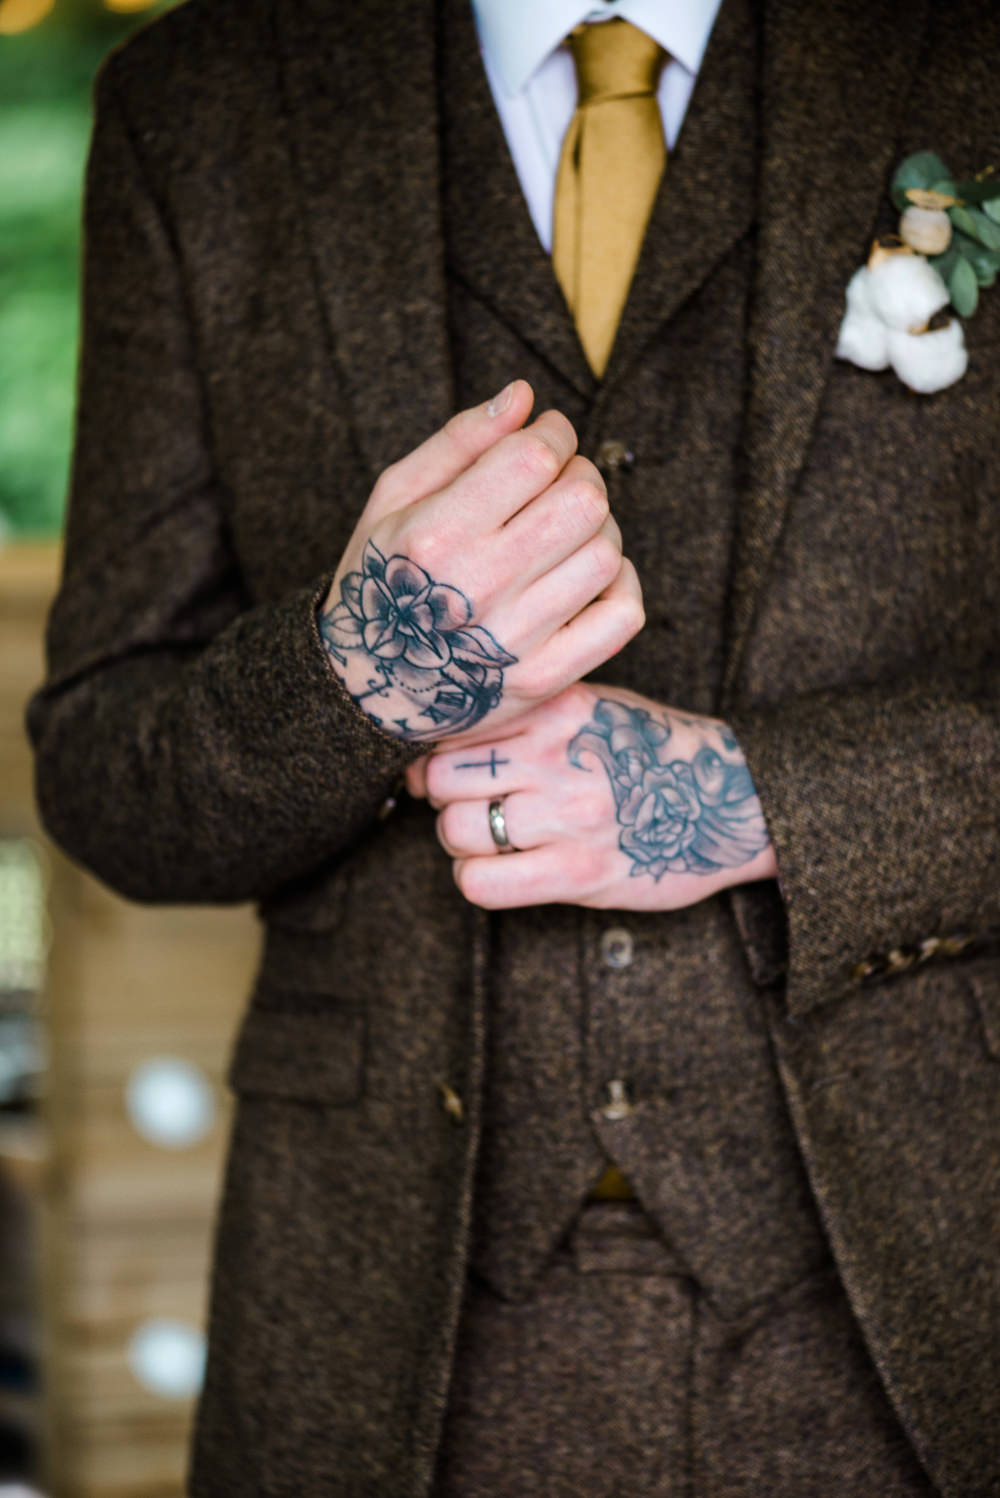 Groom Suit Brown Tweed Gold Tie Waistcoat Indie Wedding Ideas Kat Antos-Lewis Photography